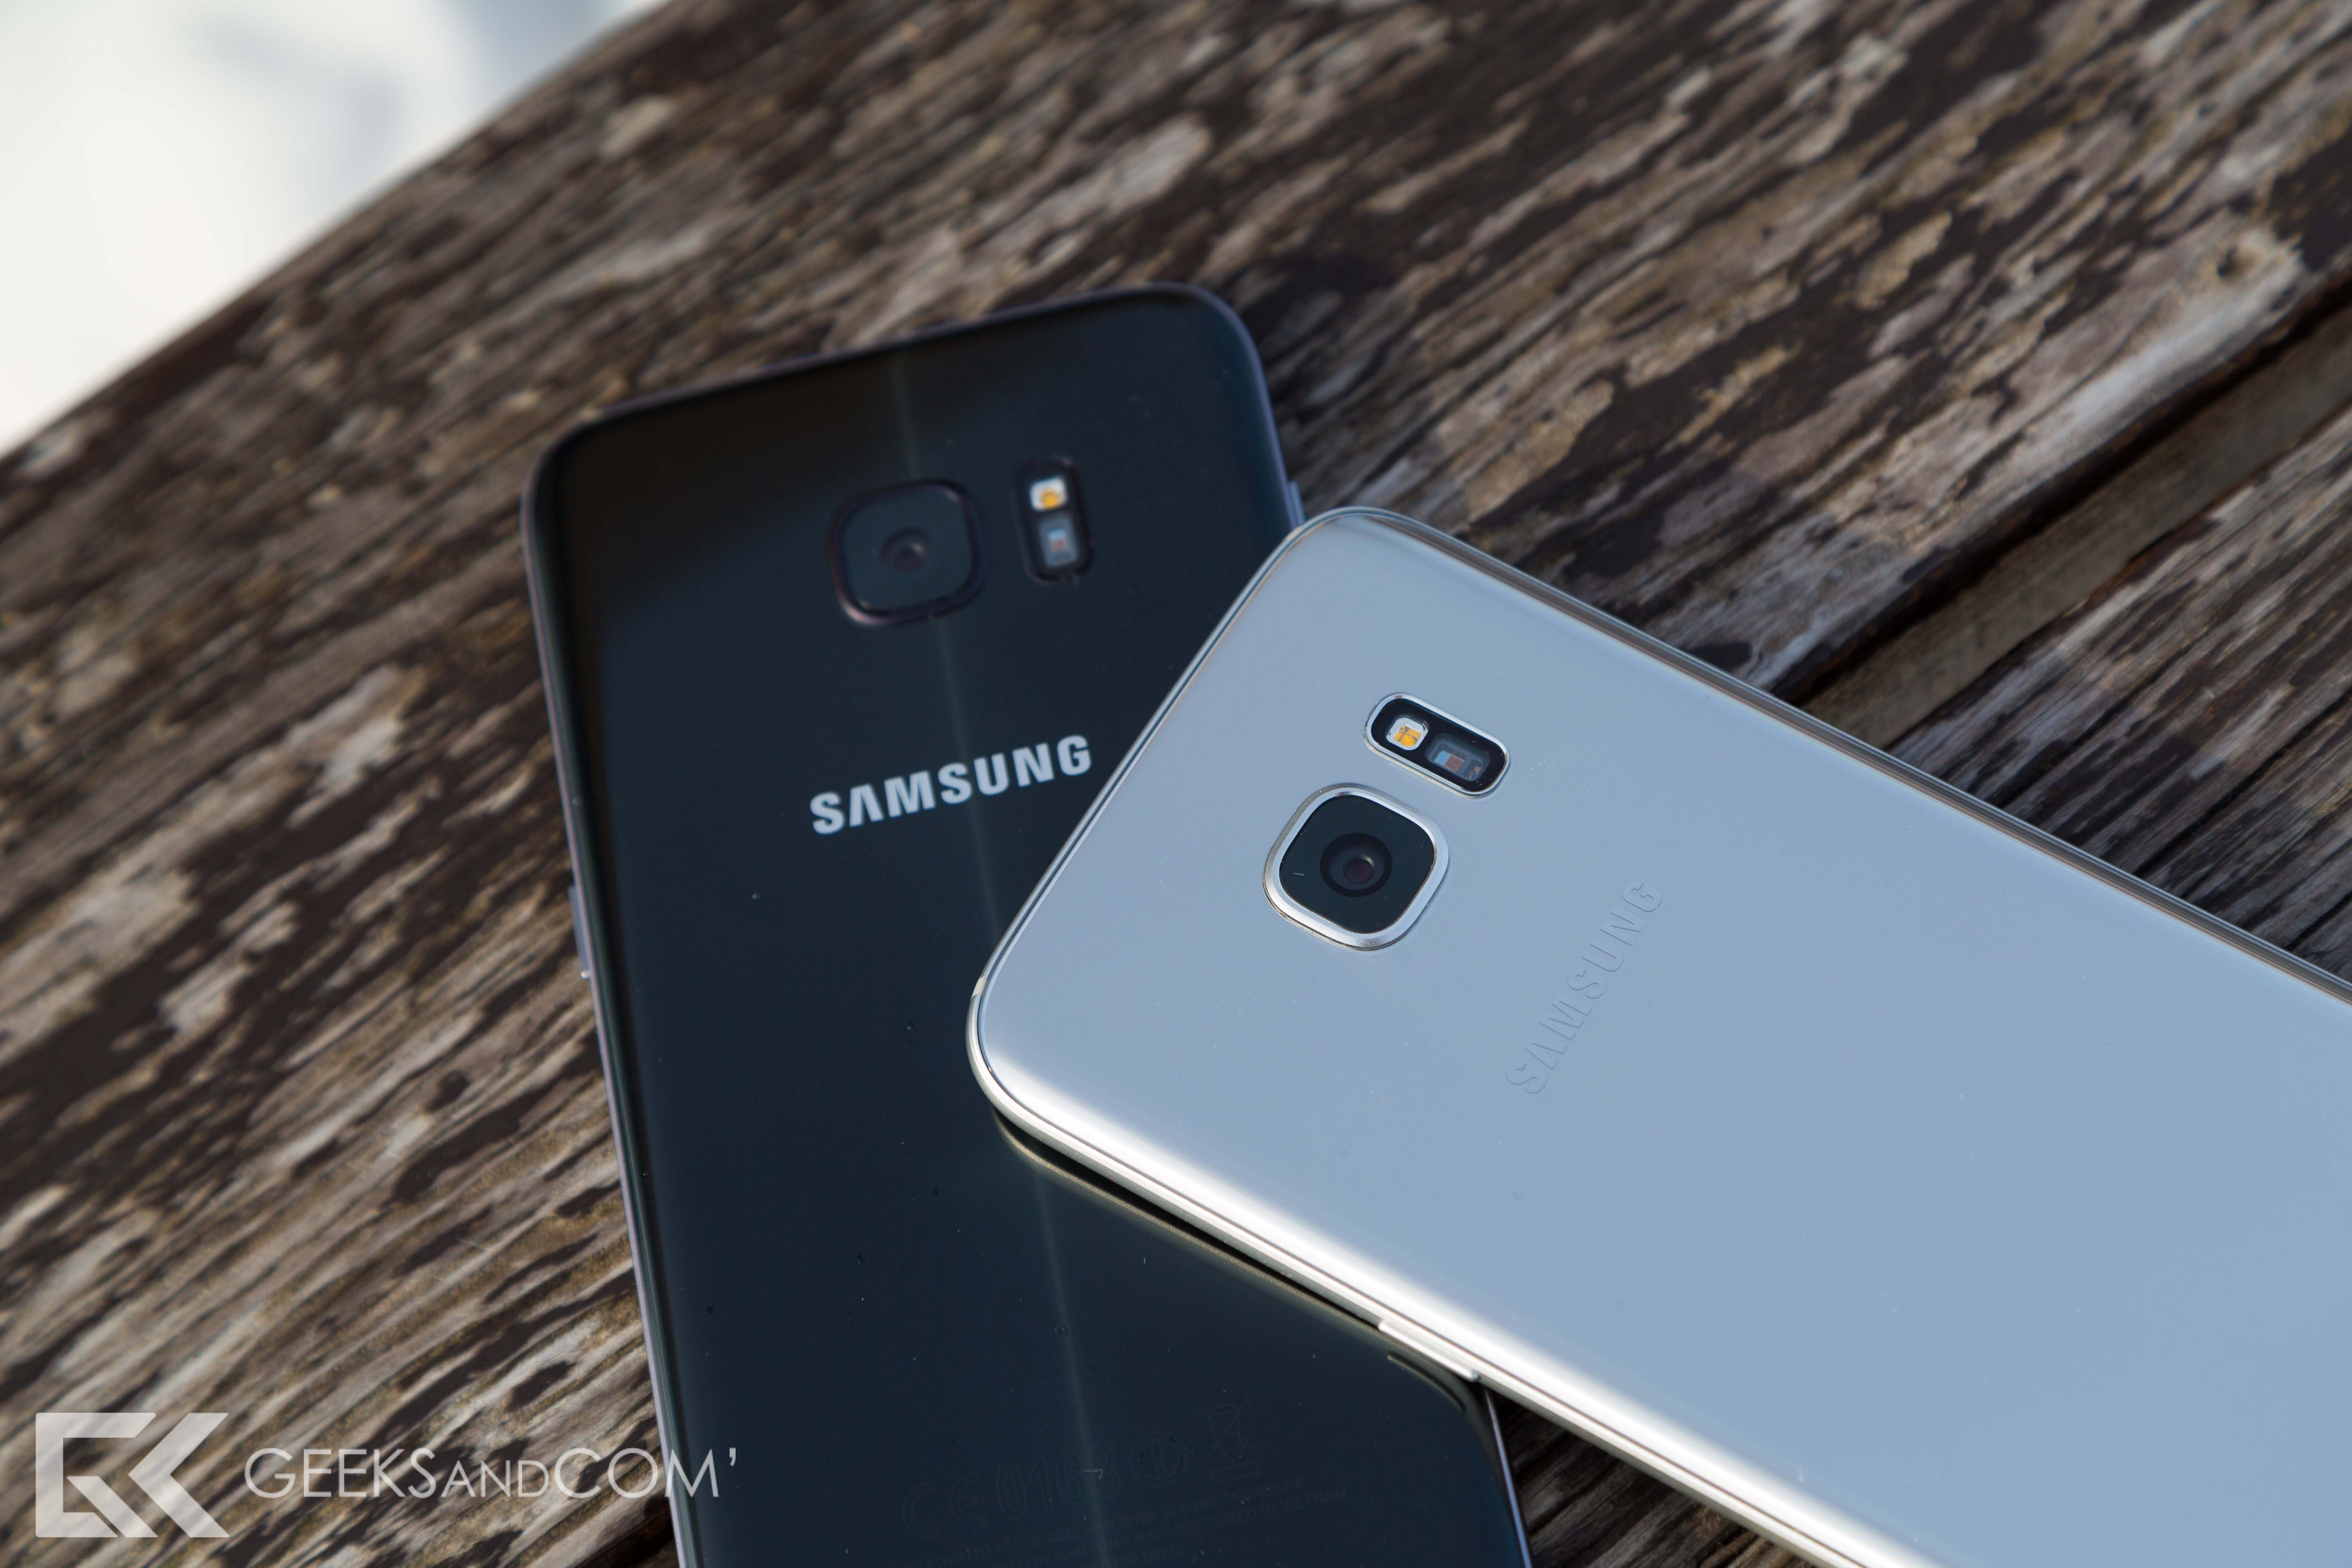 Samsung Galaxy S7 vs Galaxy S7 edge - Test Geeks and Com -4